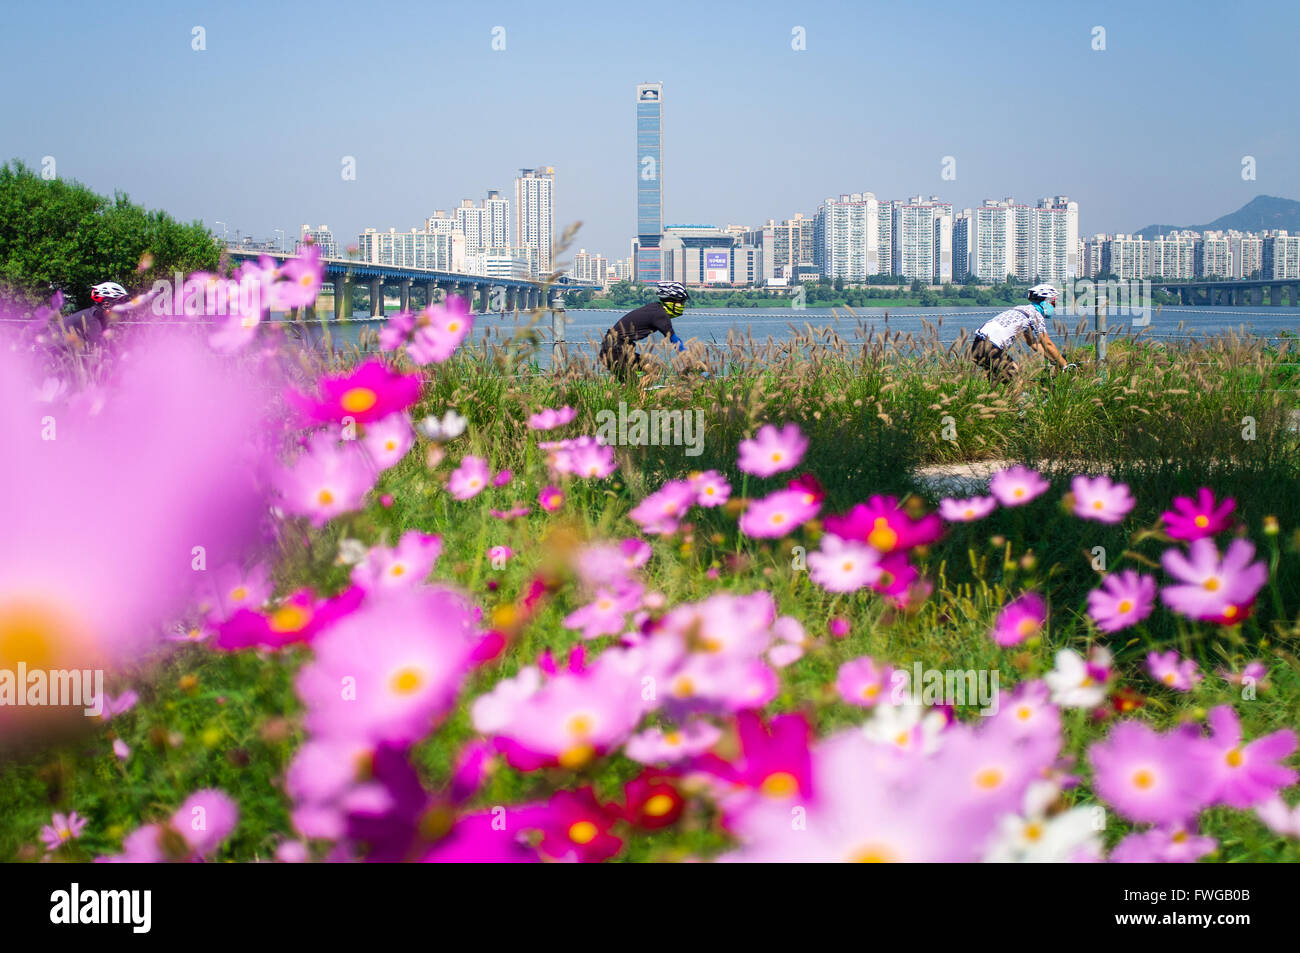 Cyclists in the Han River Park in Seoul, South Korea. - Stock Image